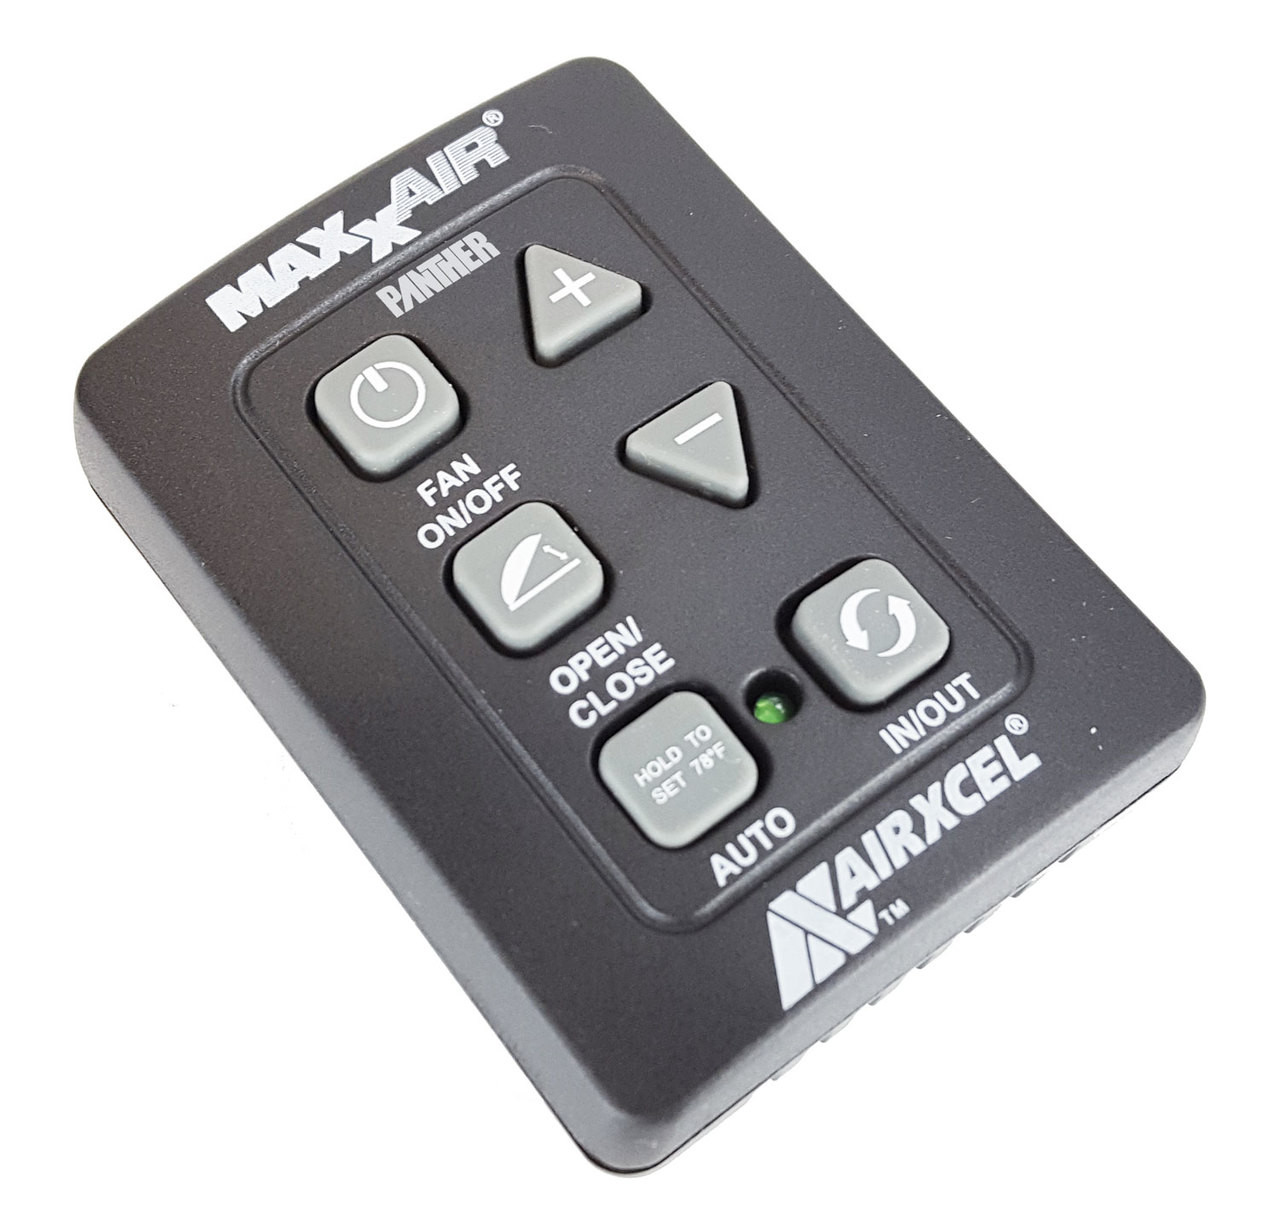 maxxair 00a03650kit 6 button wall control for maxxfan plus and deluxe black  [ 1280 x 1217 Pixel ]